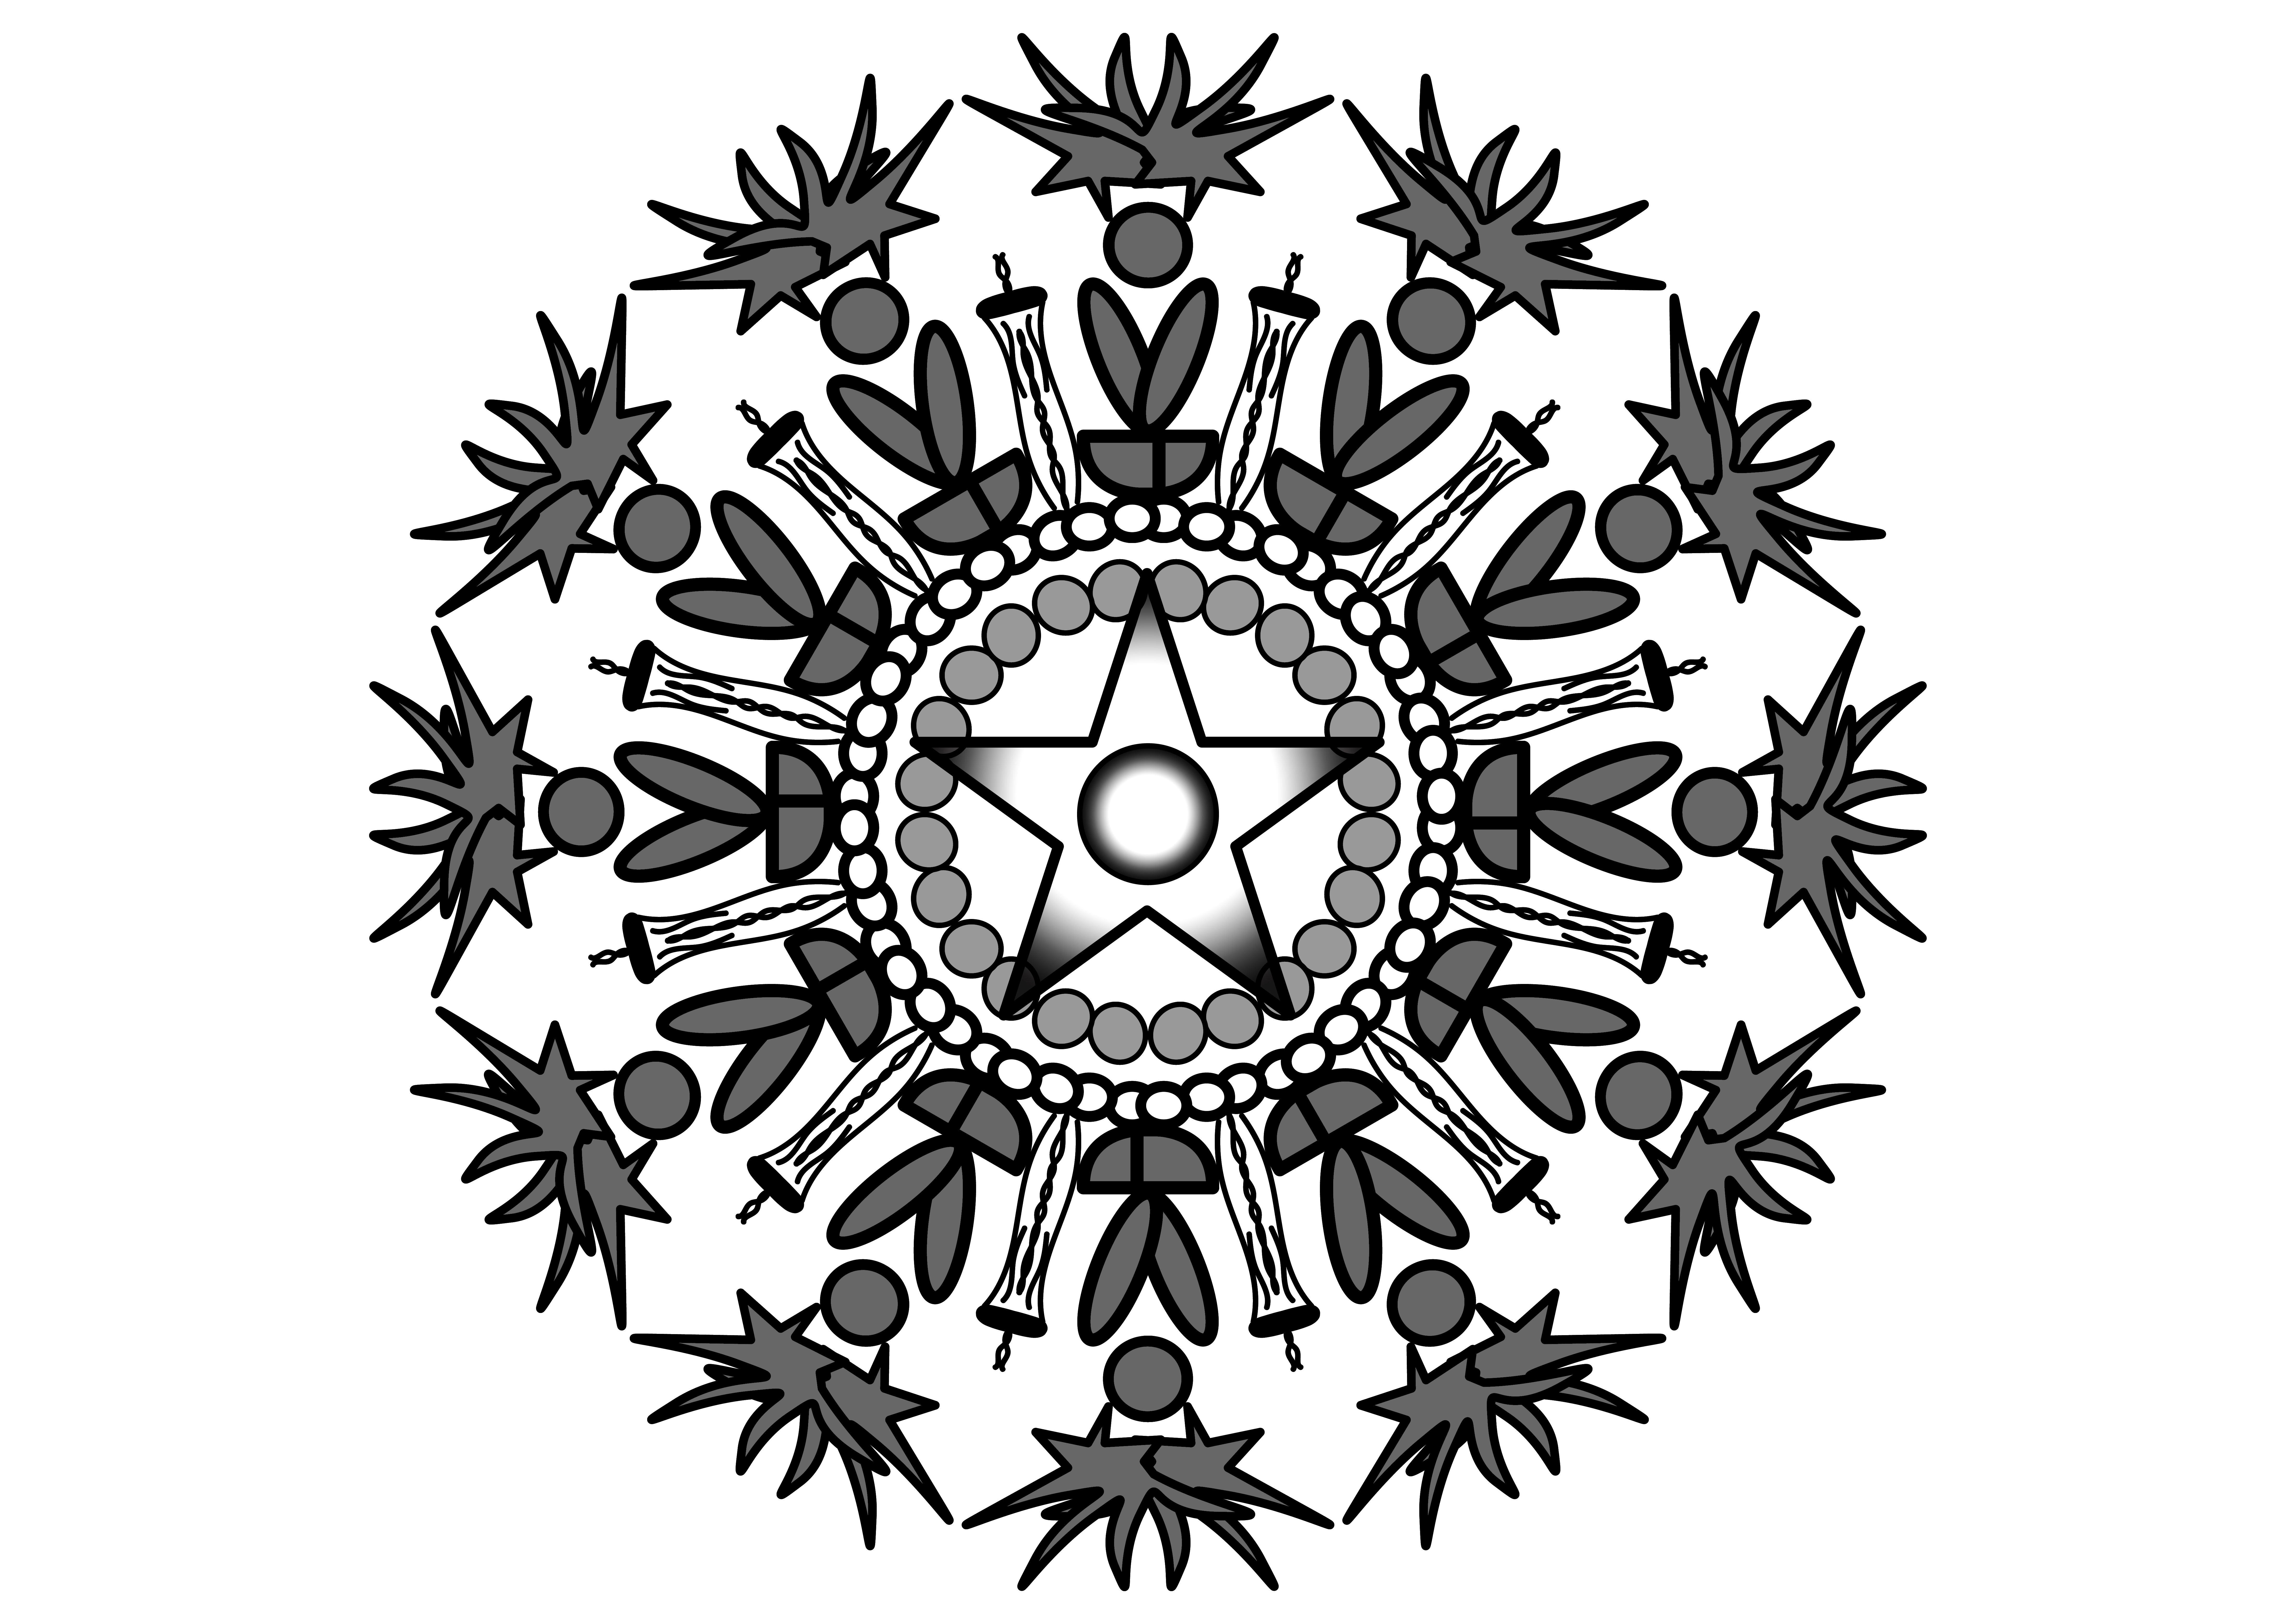 Download Free Mandala Grey Graphic By Ssiimpti73 Creative Fabrica for Cricut Explore, Silhouette and other cutting machines.